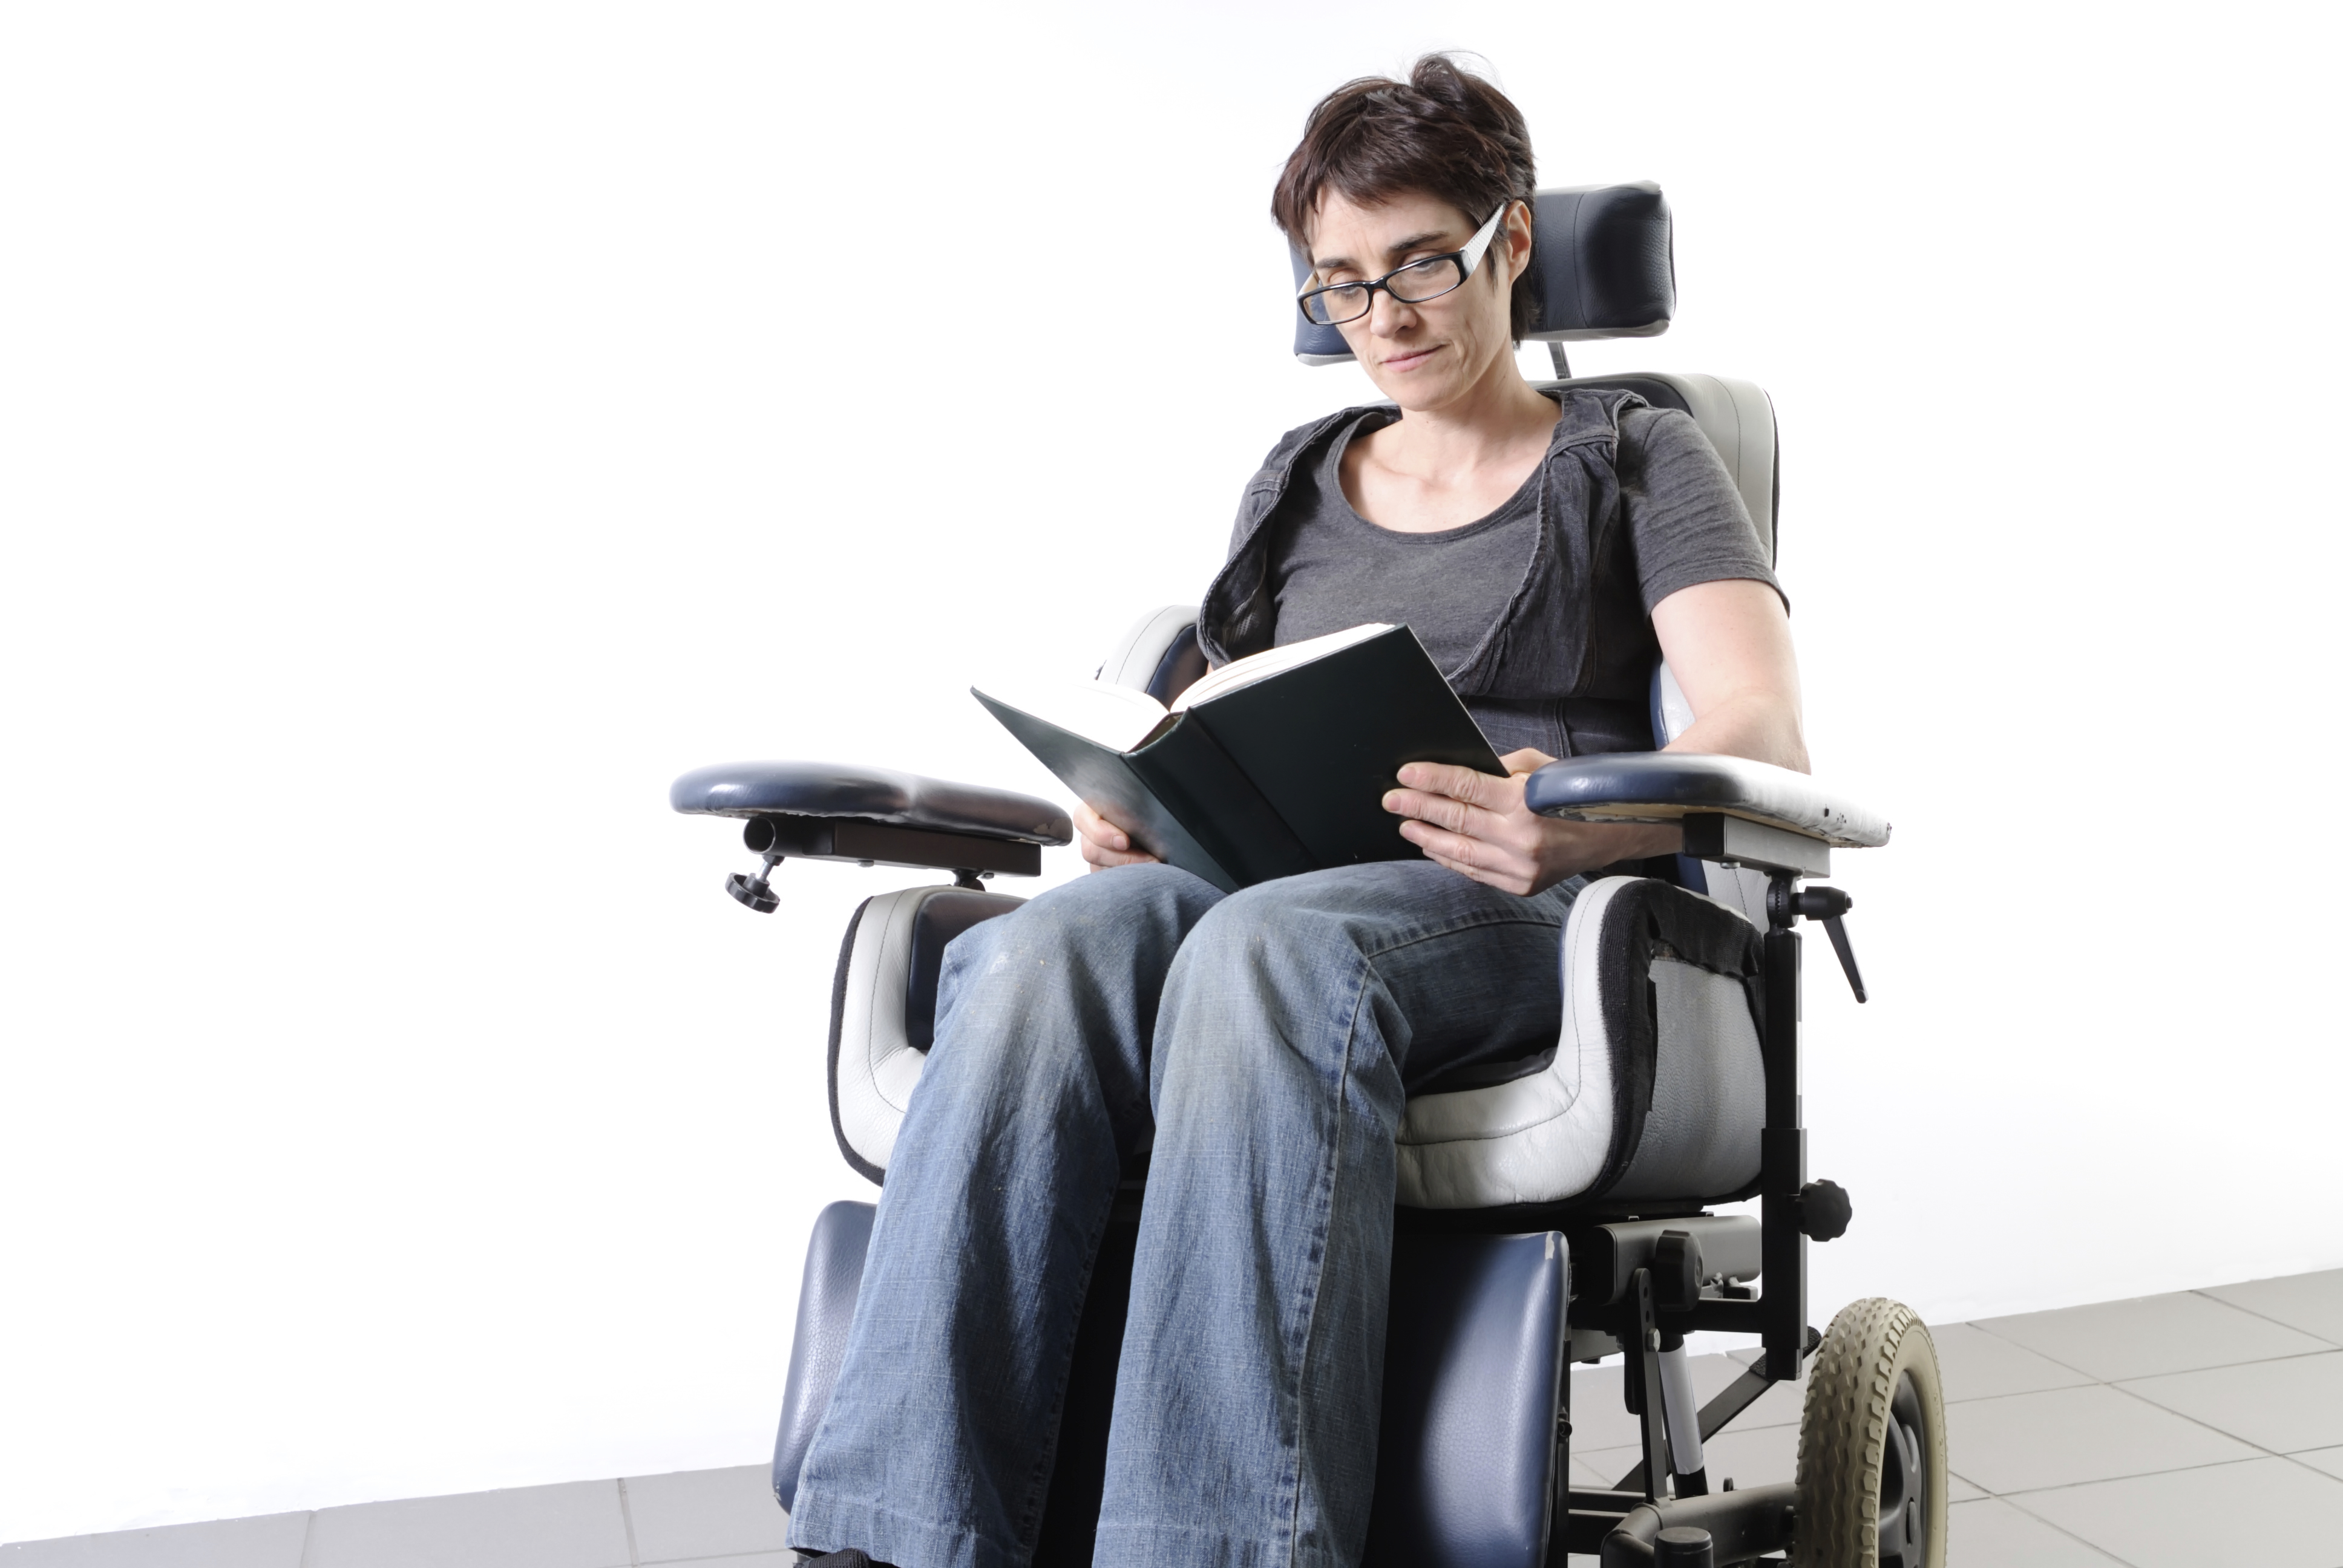 A woman with short hair using a wheelchair and reading a book